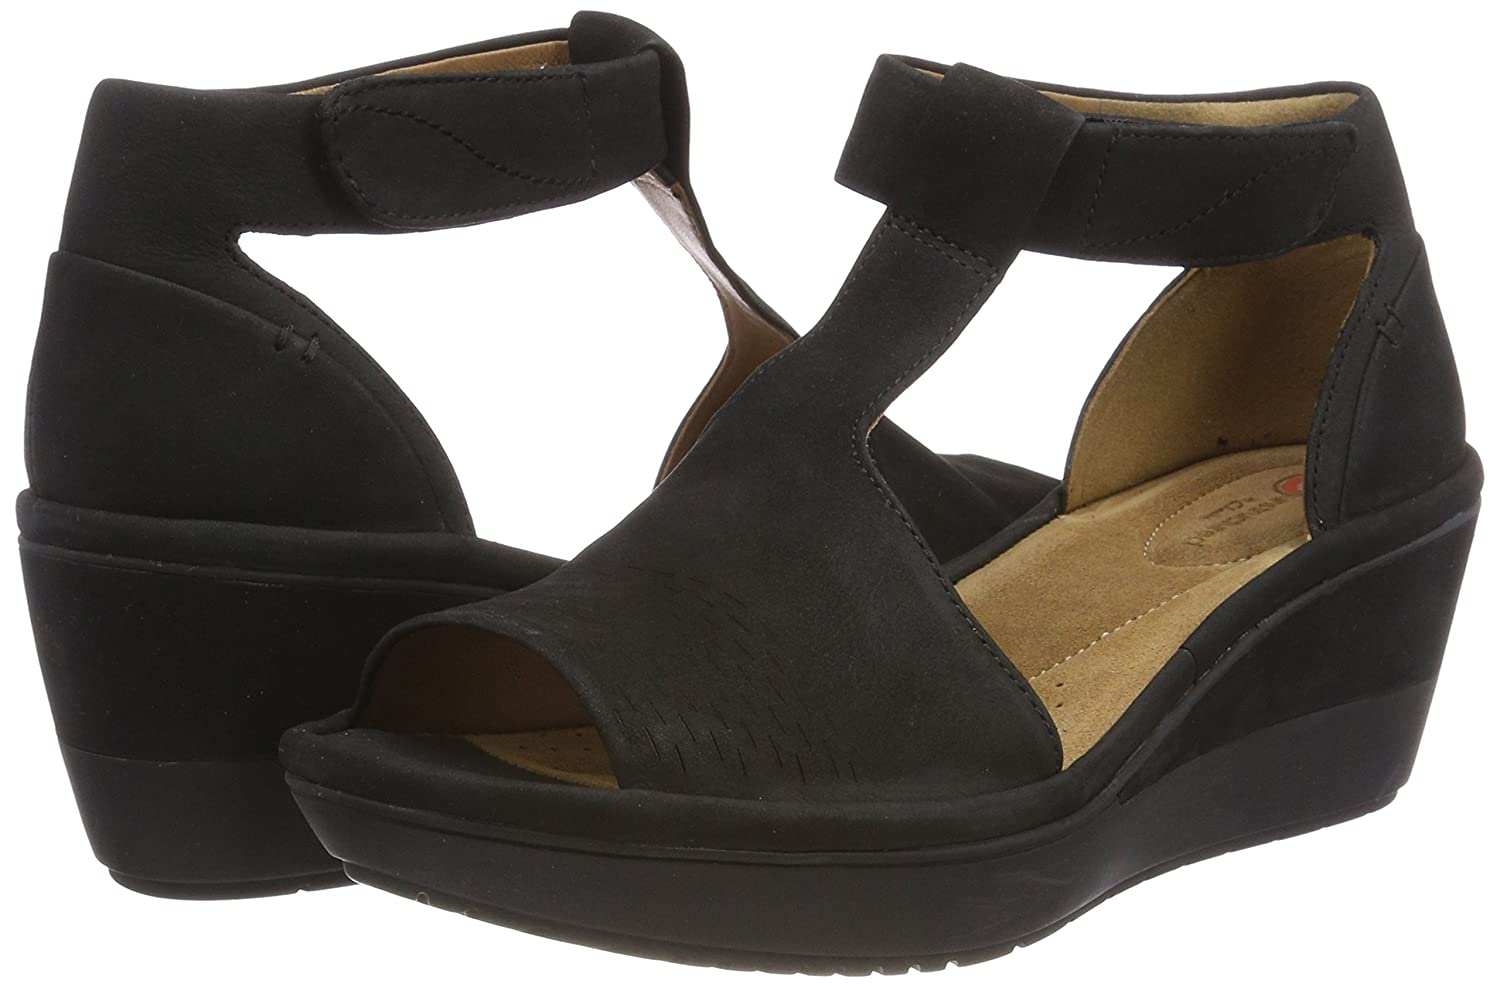 Femme Bride Cheville AvahSandales Clarks Wynnmere m0Nw8n